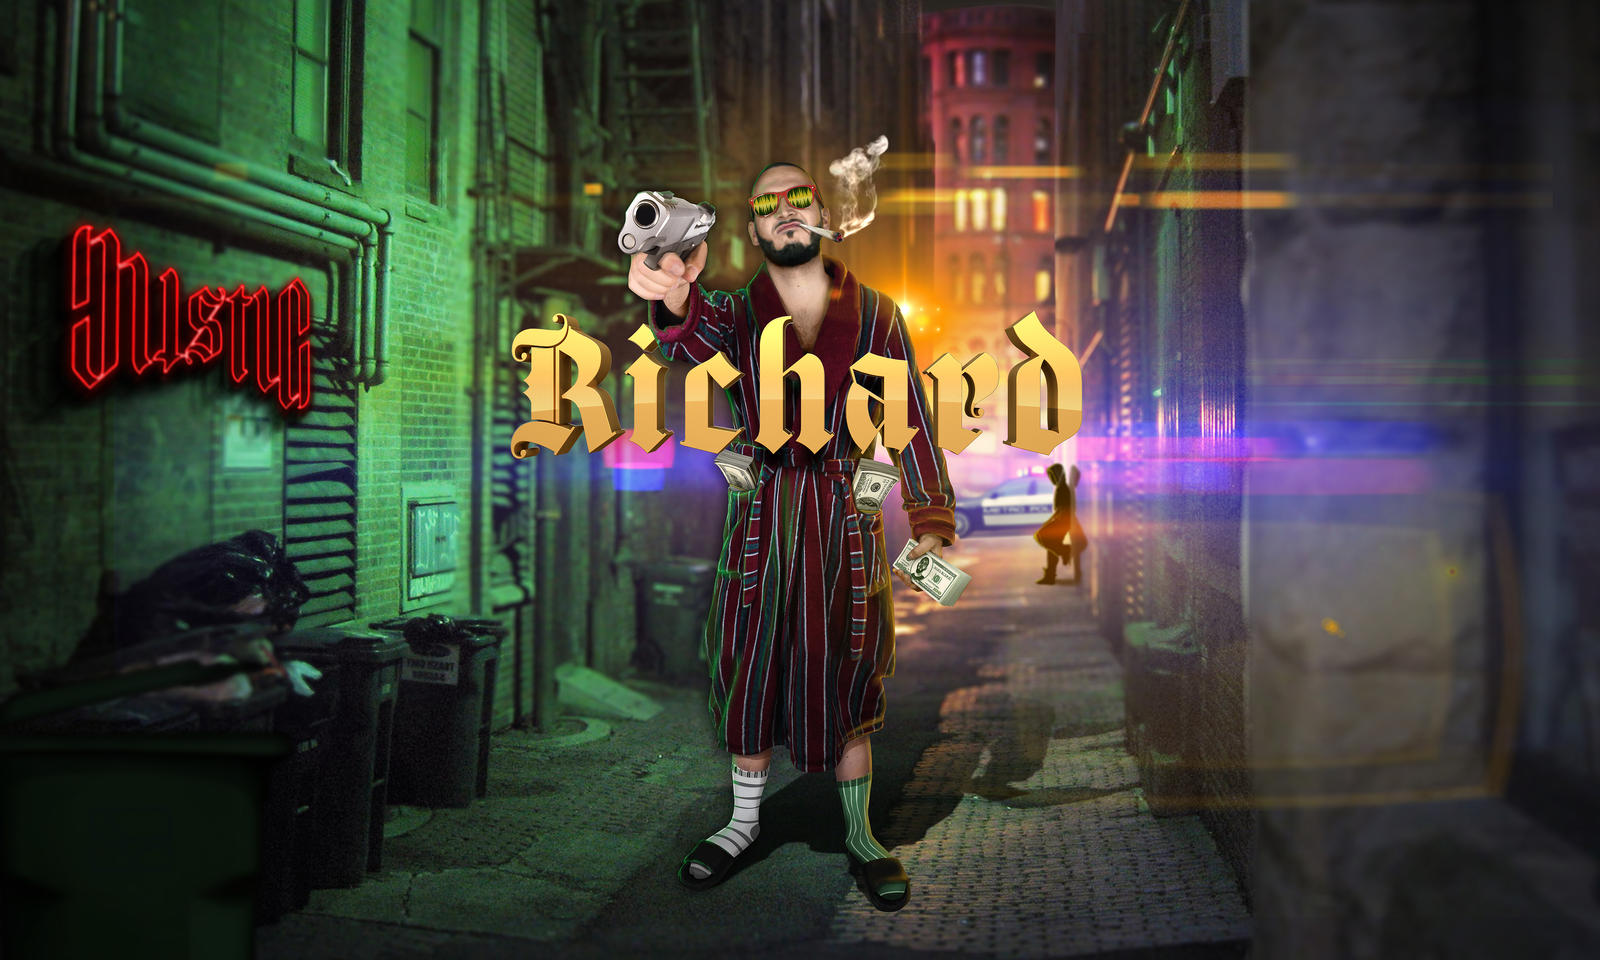 Mistic - Richard single artwork